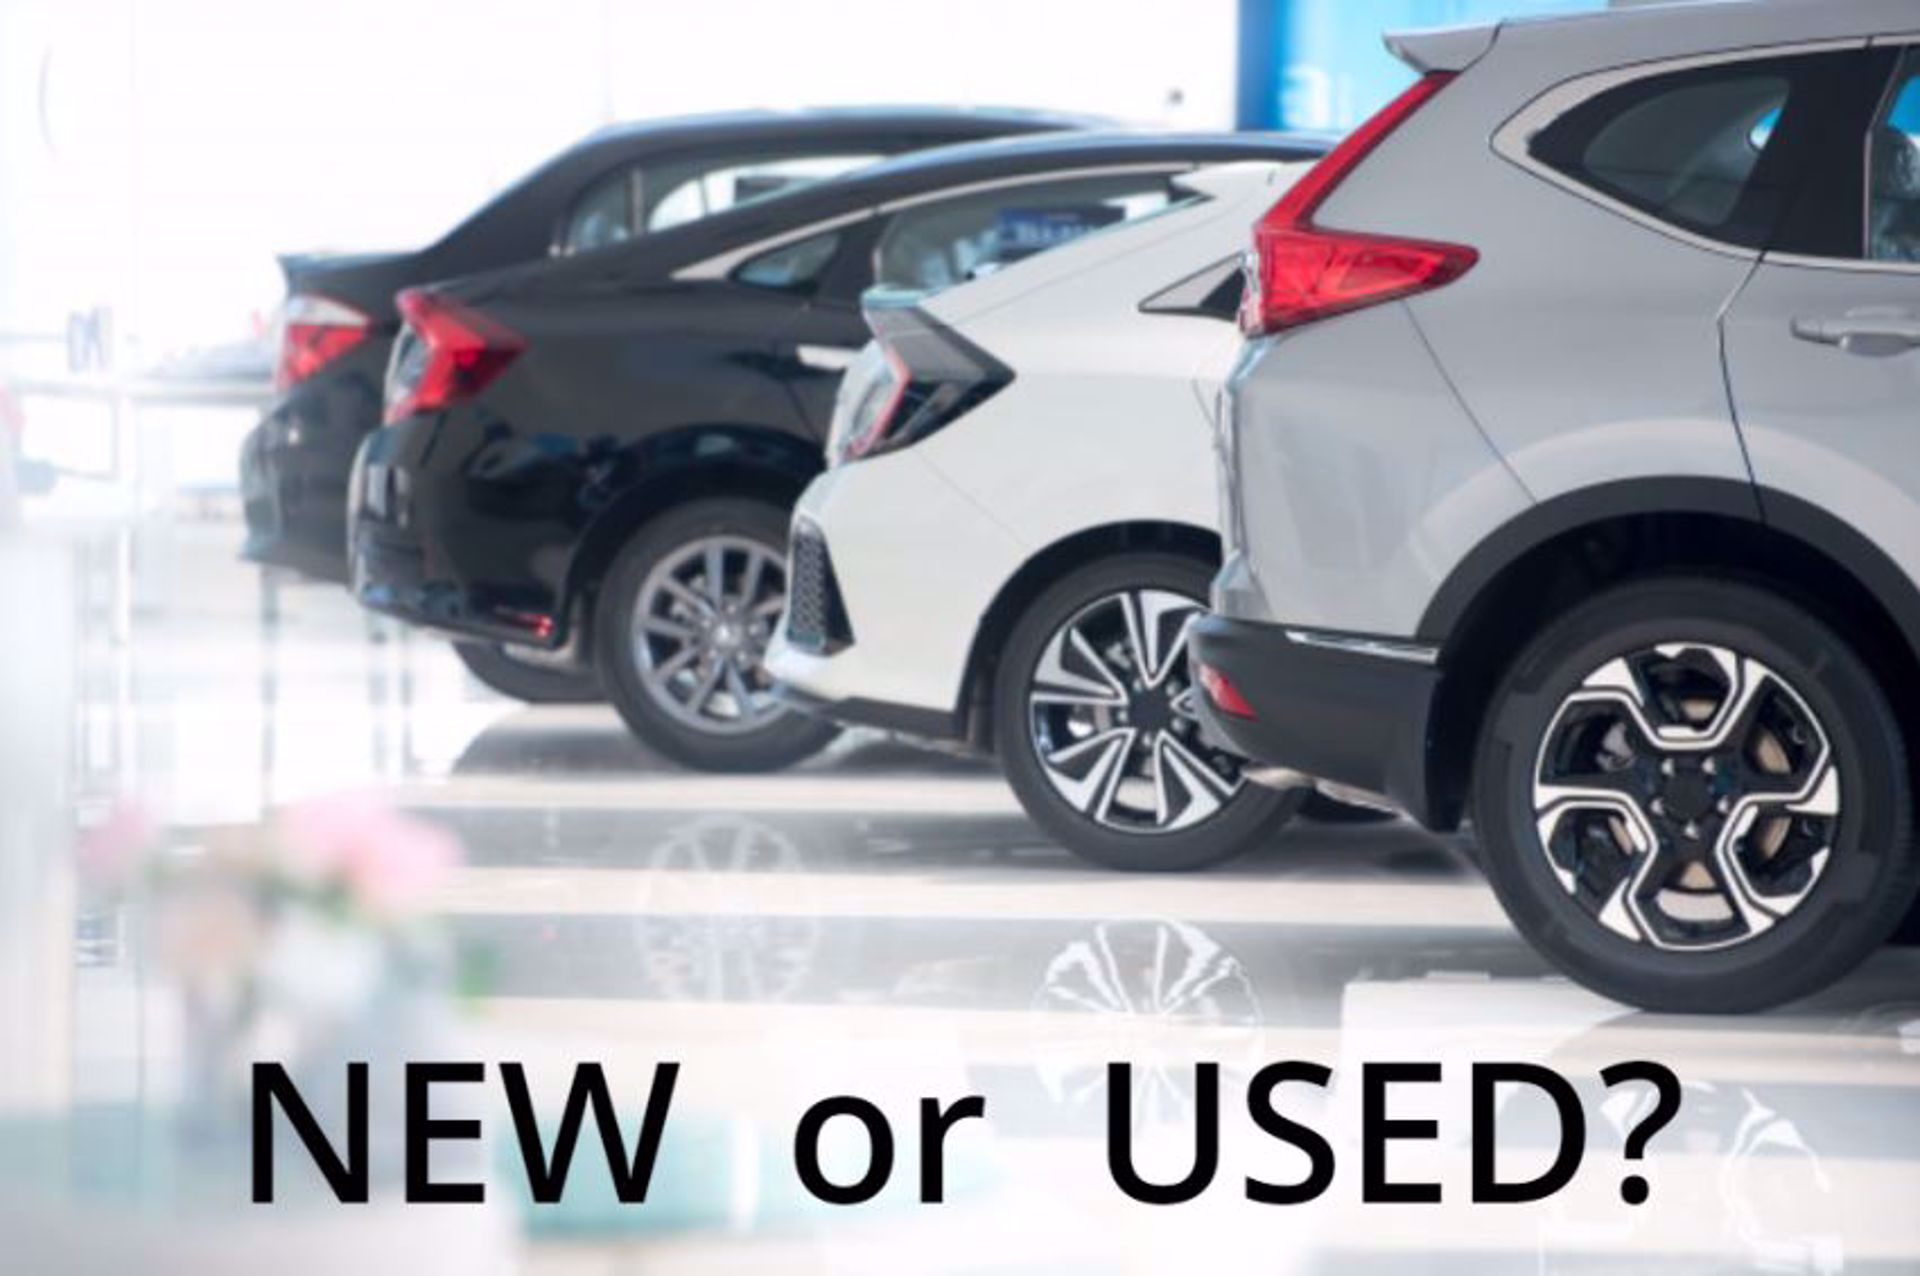 Deciding Whether to Buy a New or Used Car? Read This!